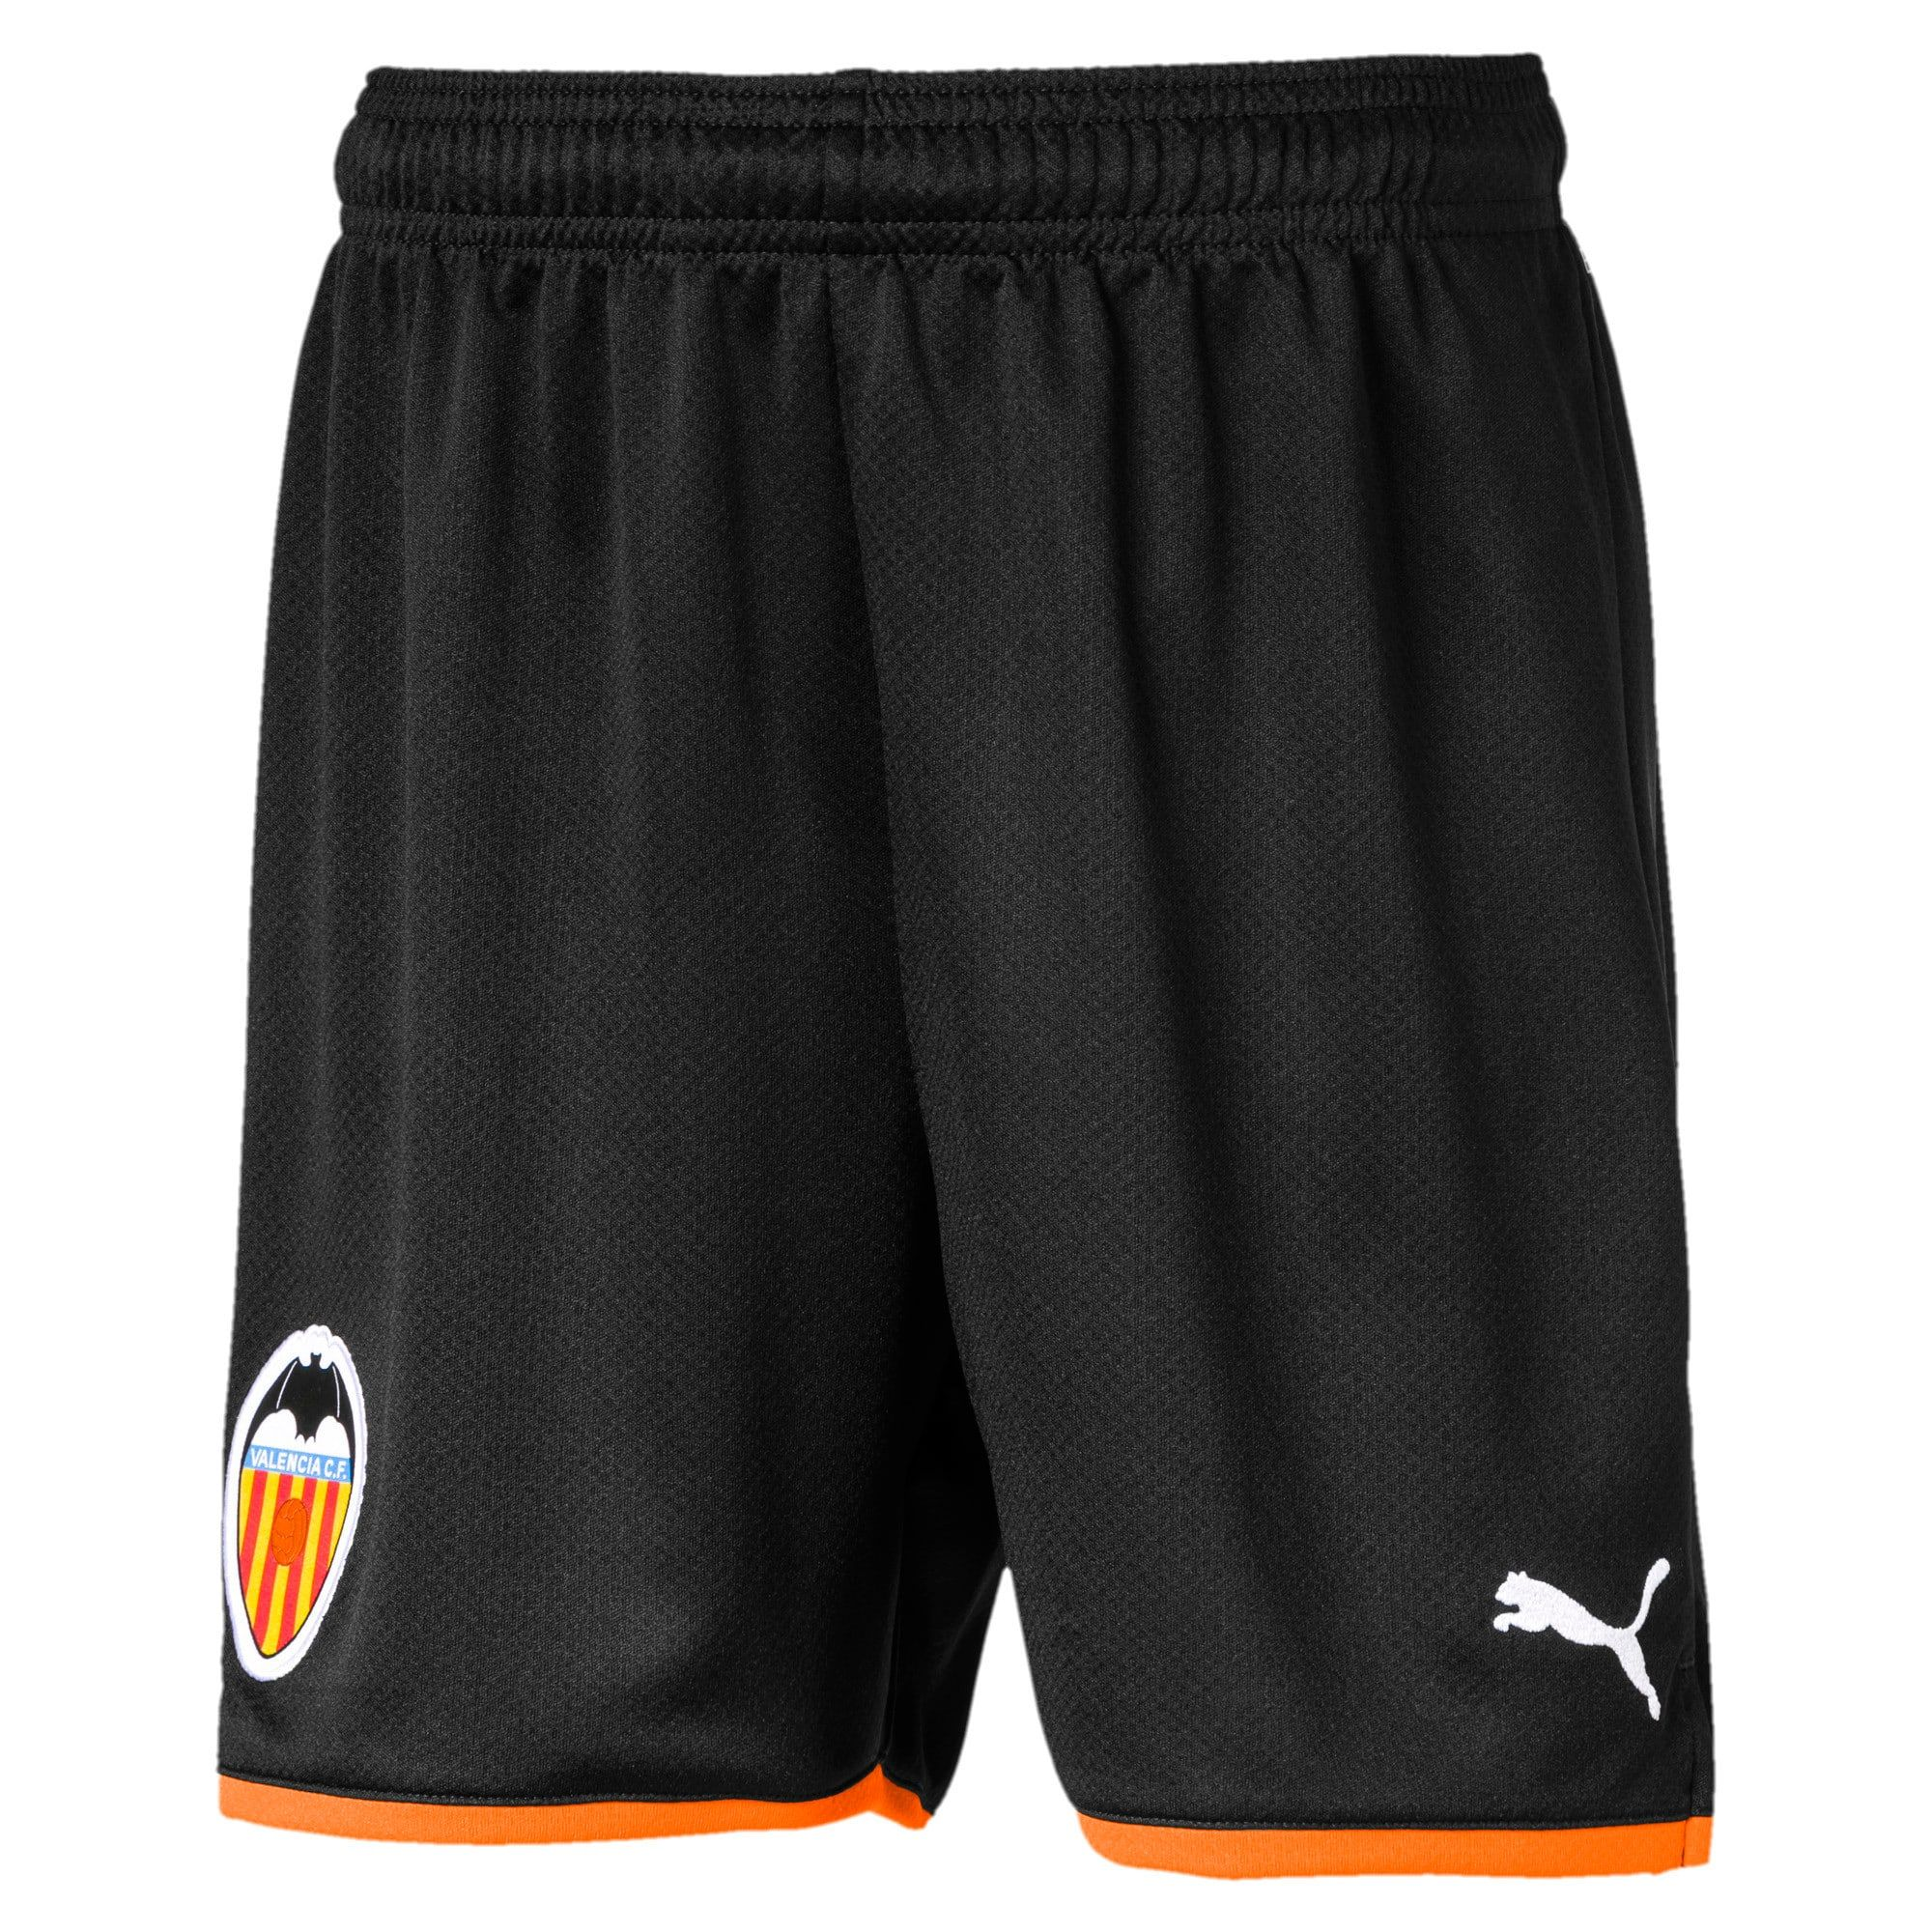 Photo of PUMA Valencia Cf Kids' Replica Shorts in Black/Vibrant Orange size 11-12 Youth